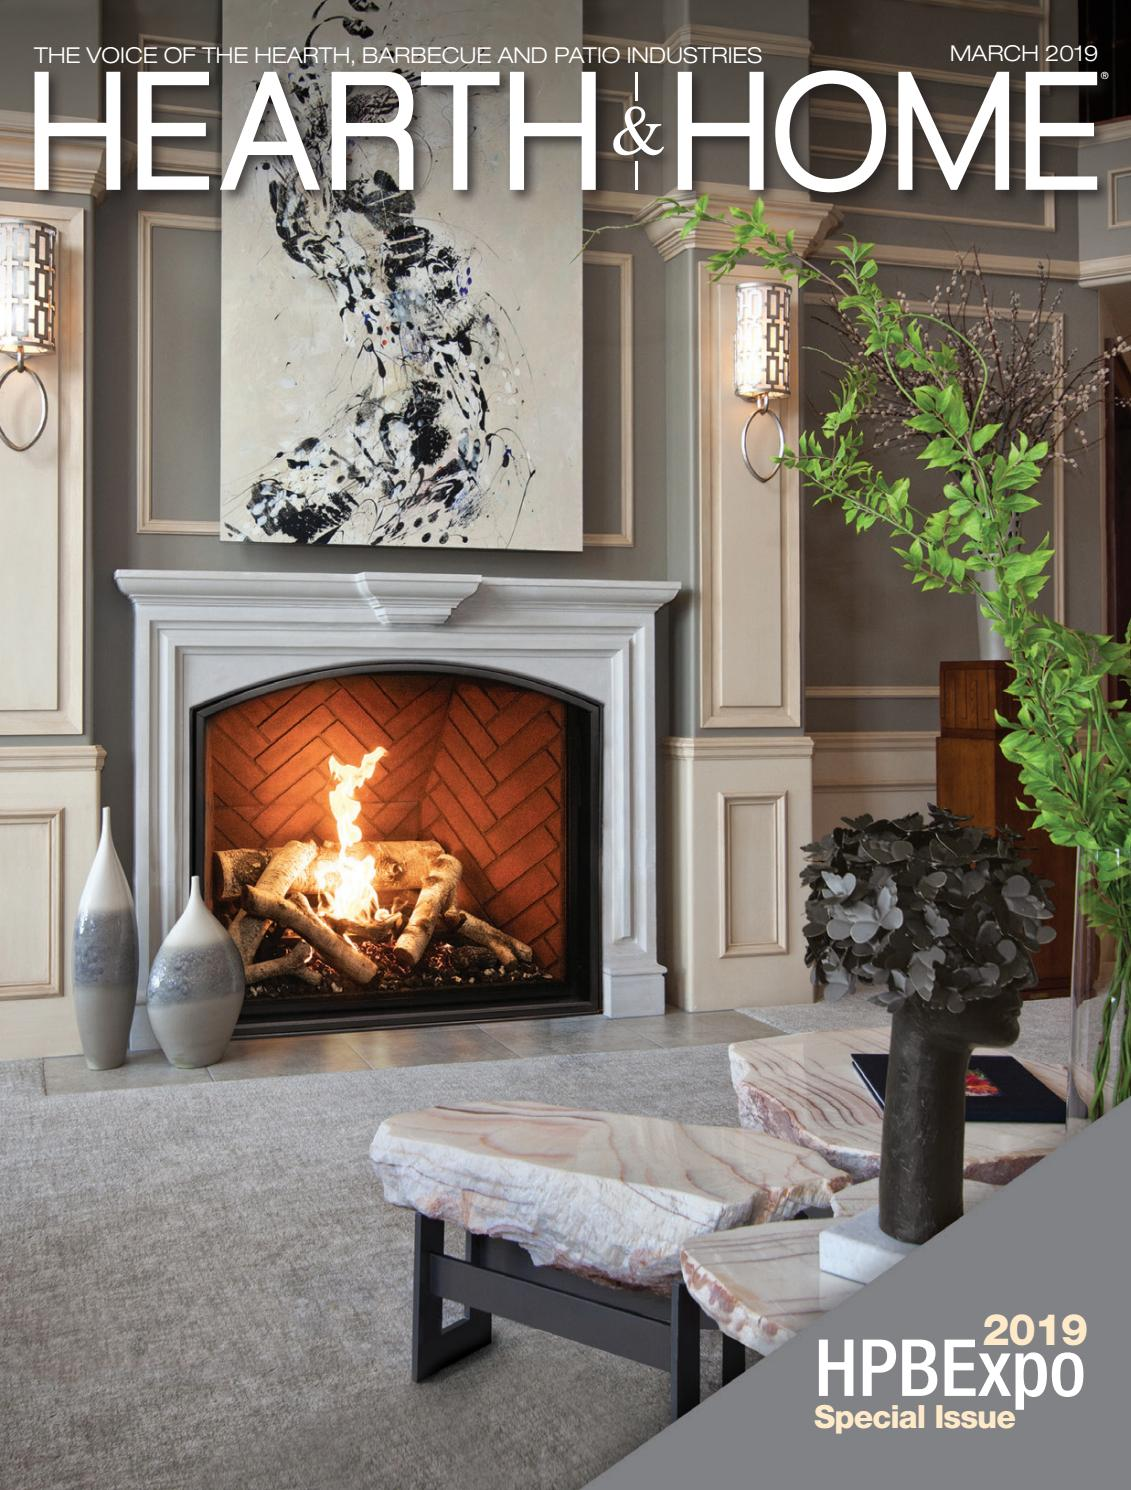 Fireplace Store San Antonio Best Of Hearth & Home Magazine – 2019 March issue by Hearth & Home